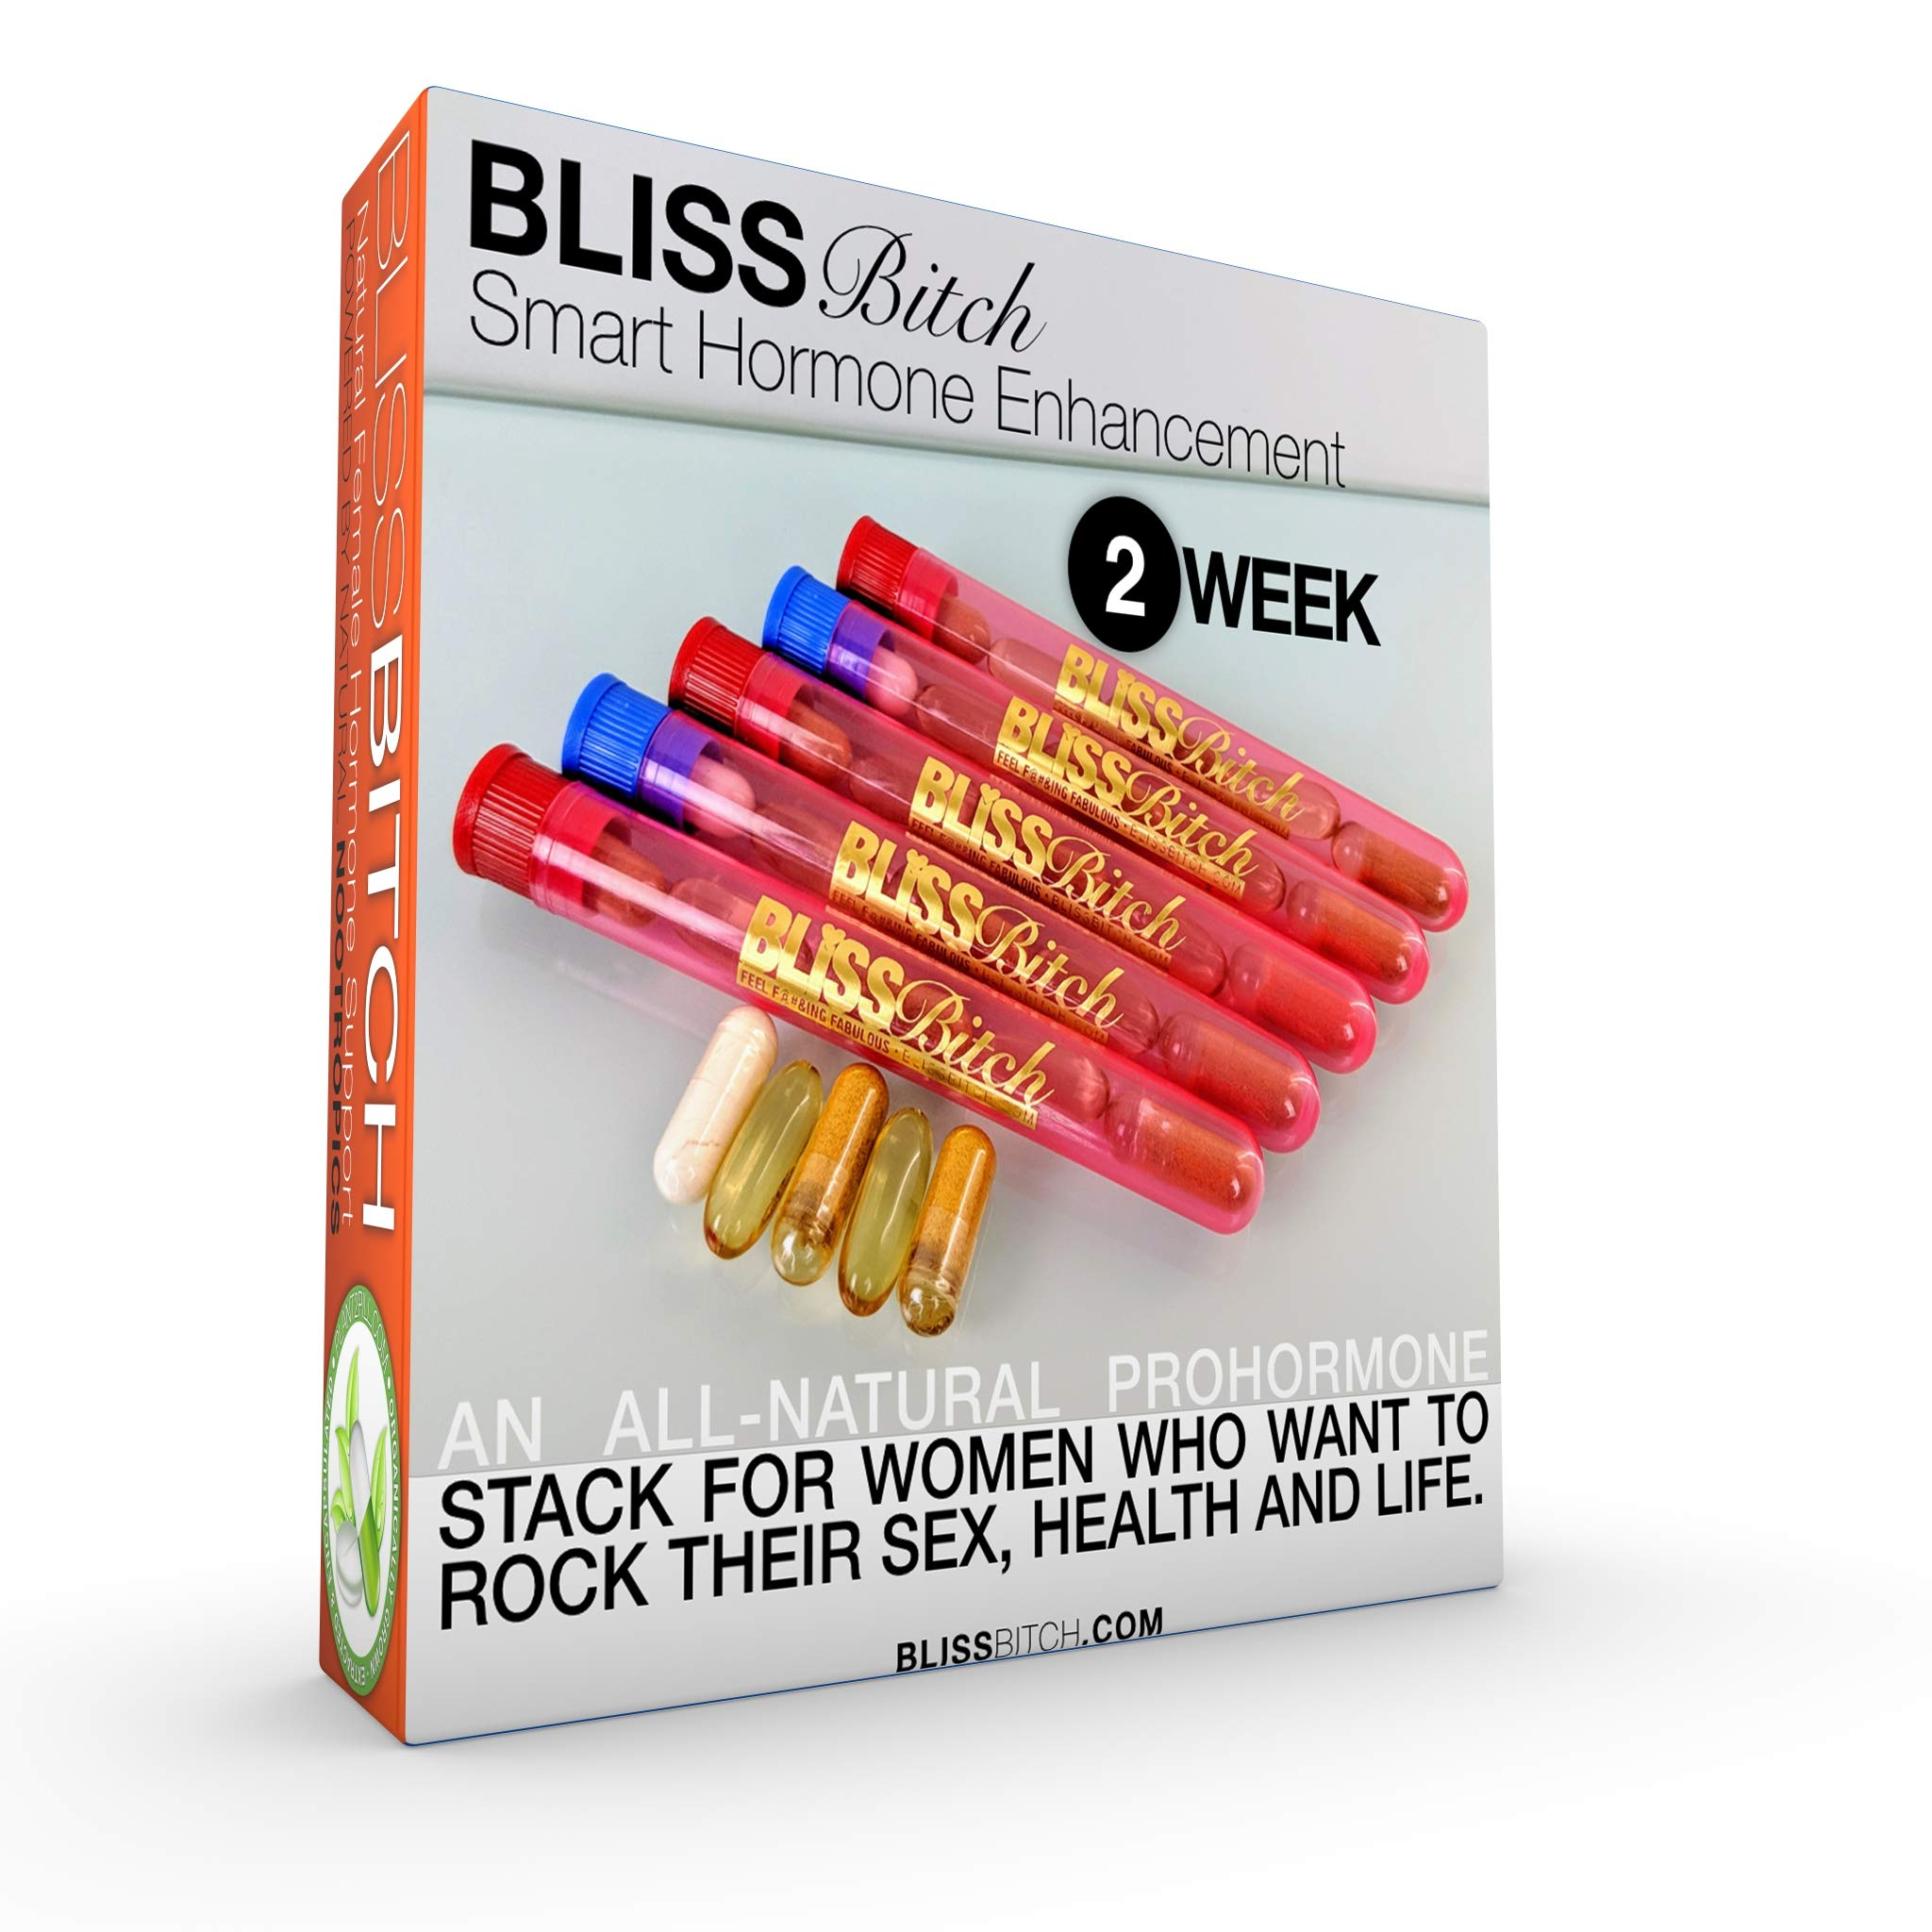 BlissBitch Restoramones - Female Pre-hormones - Fast, Natural Solution For Hot Flashes, Wrinkles, Mood Swings, and Other Issues with Menopause and Menses - The Safe Alternative to BioIdentical Hormone by Restoramones by BlissBitch